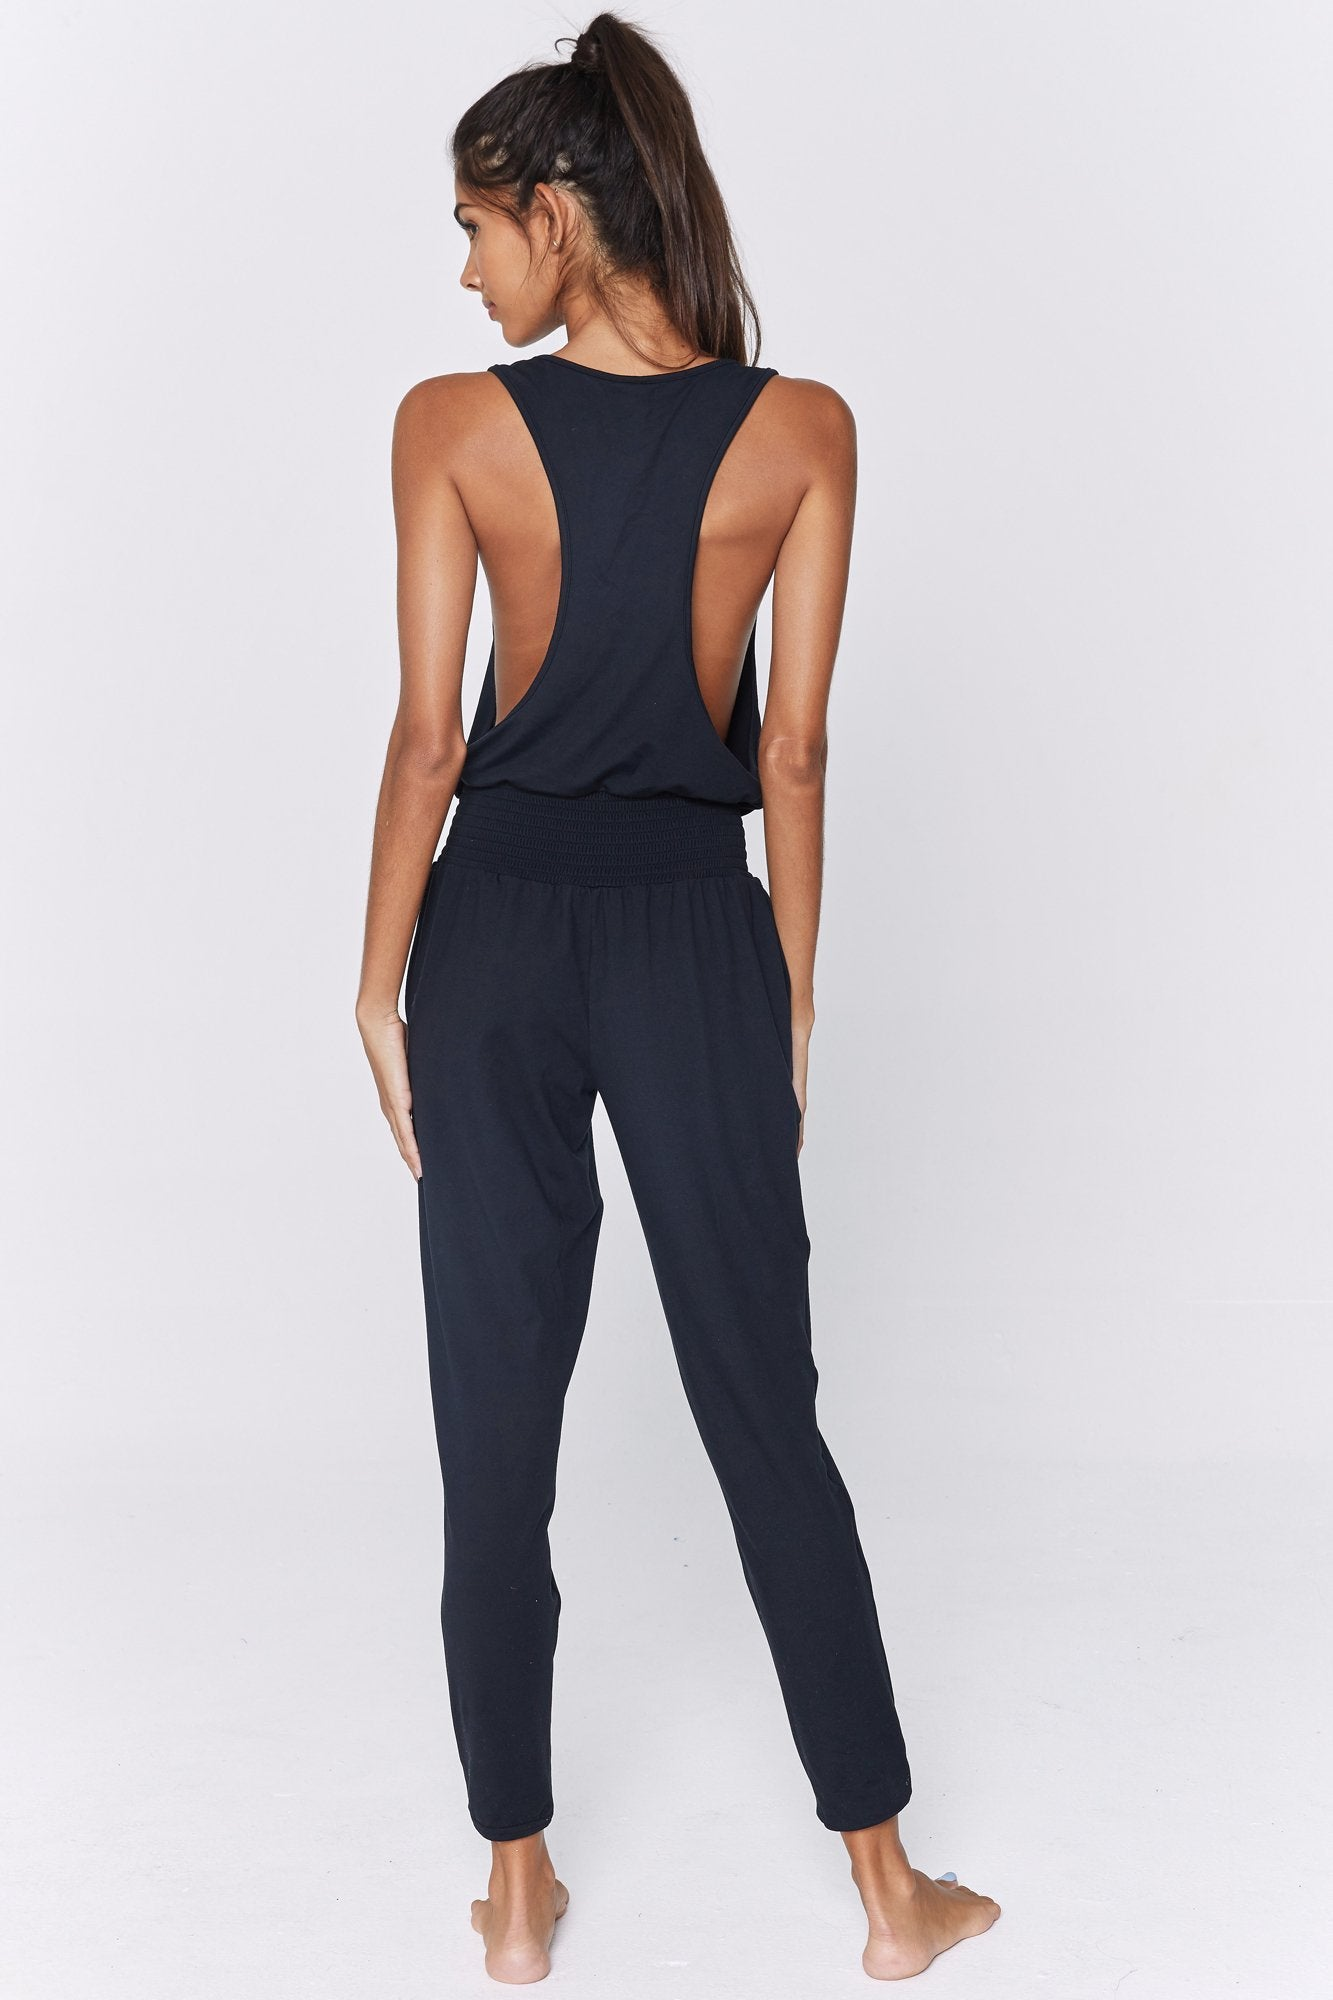 Back view of model wearing a one-piece, sleeveless jumpsuit in a black flowy and stretchy fabric. The jumpsuit features a loose-fitting racer back, side slit pockets, an elastic waist, tapered pants, and an elastic cuff around the ankle.